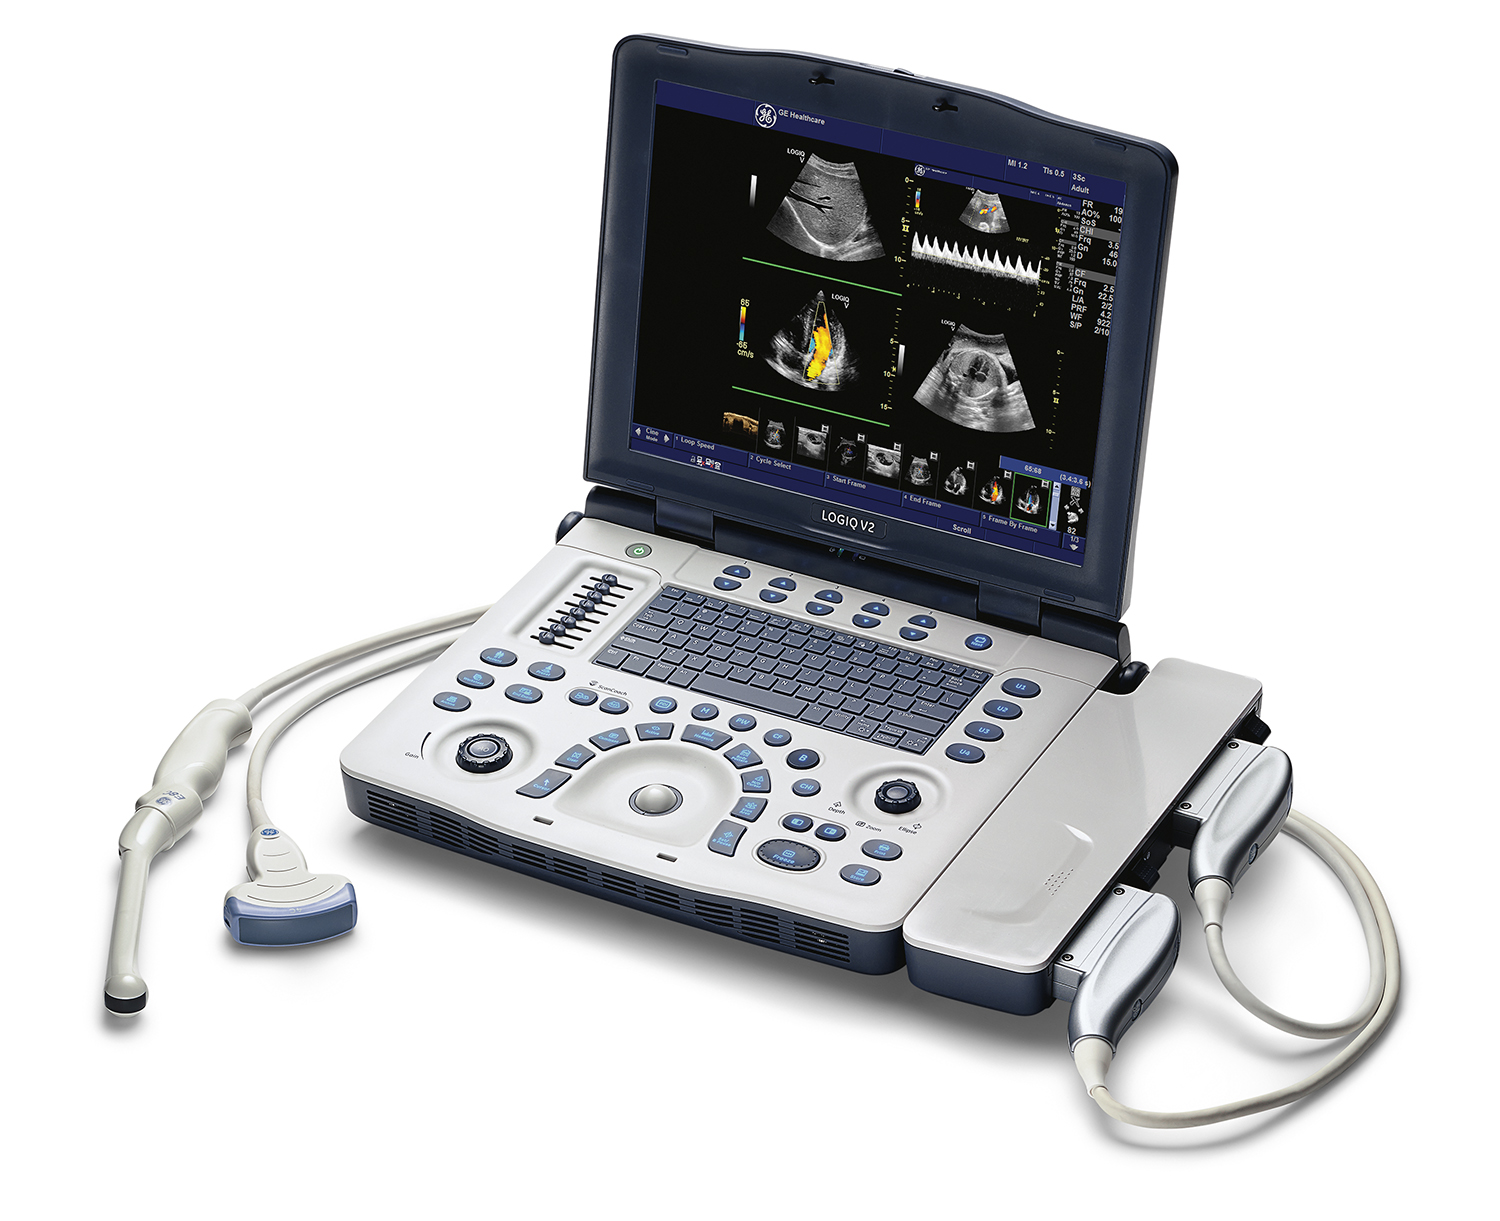 Ge Logiq V2 Color Portable Ultrasound Machine For Sale. Drug Alcohol Treatment Centers. How To Start A Creative Writing Story. Customer Ticketing System Spanish Verb Estar. When Is Open Enrollment For Medicare 2013. Ford Dealerships North Texas. Fax Application For Windows Dr Of Psychology. Plumbers In Baltimore Md College Of Music Fsu. Free Hosting Without Ads Mass Mailer Services